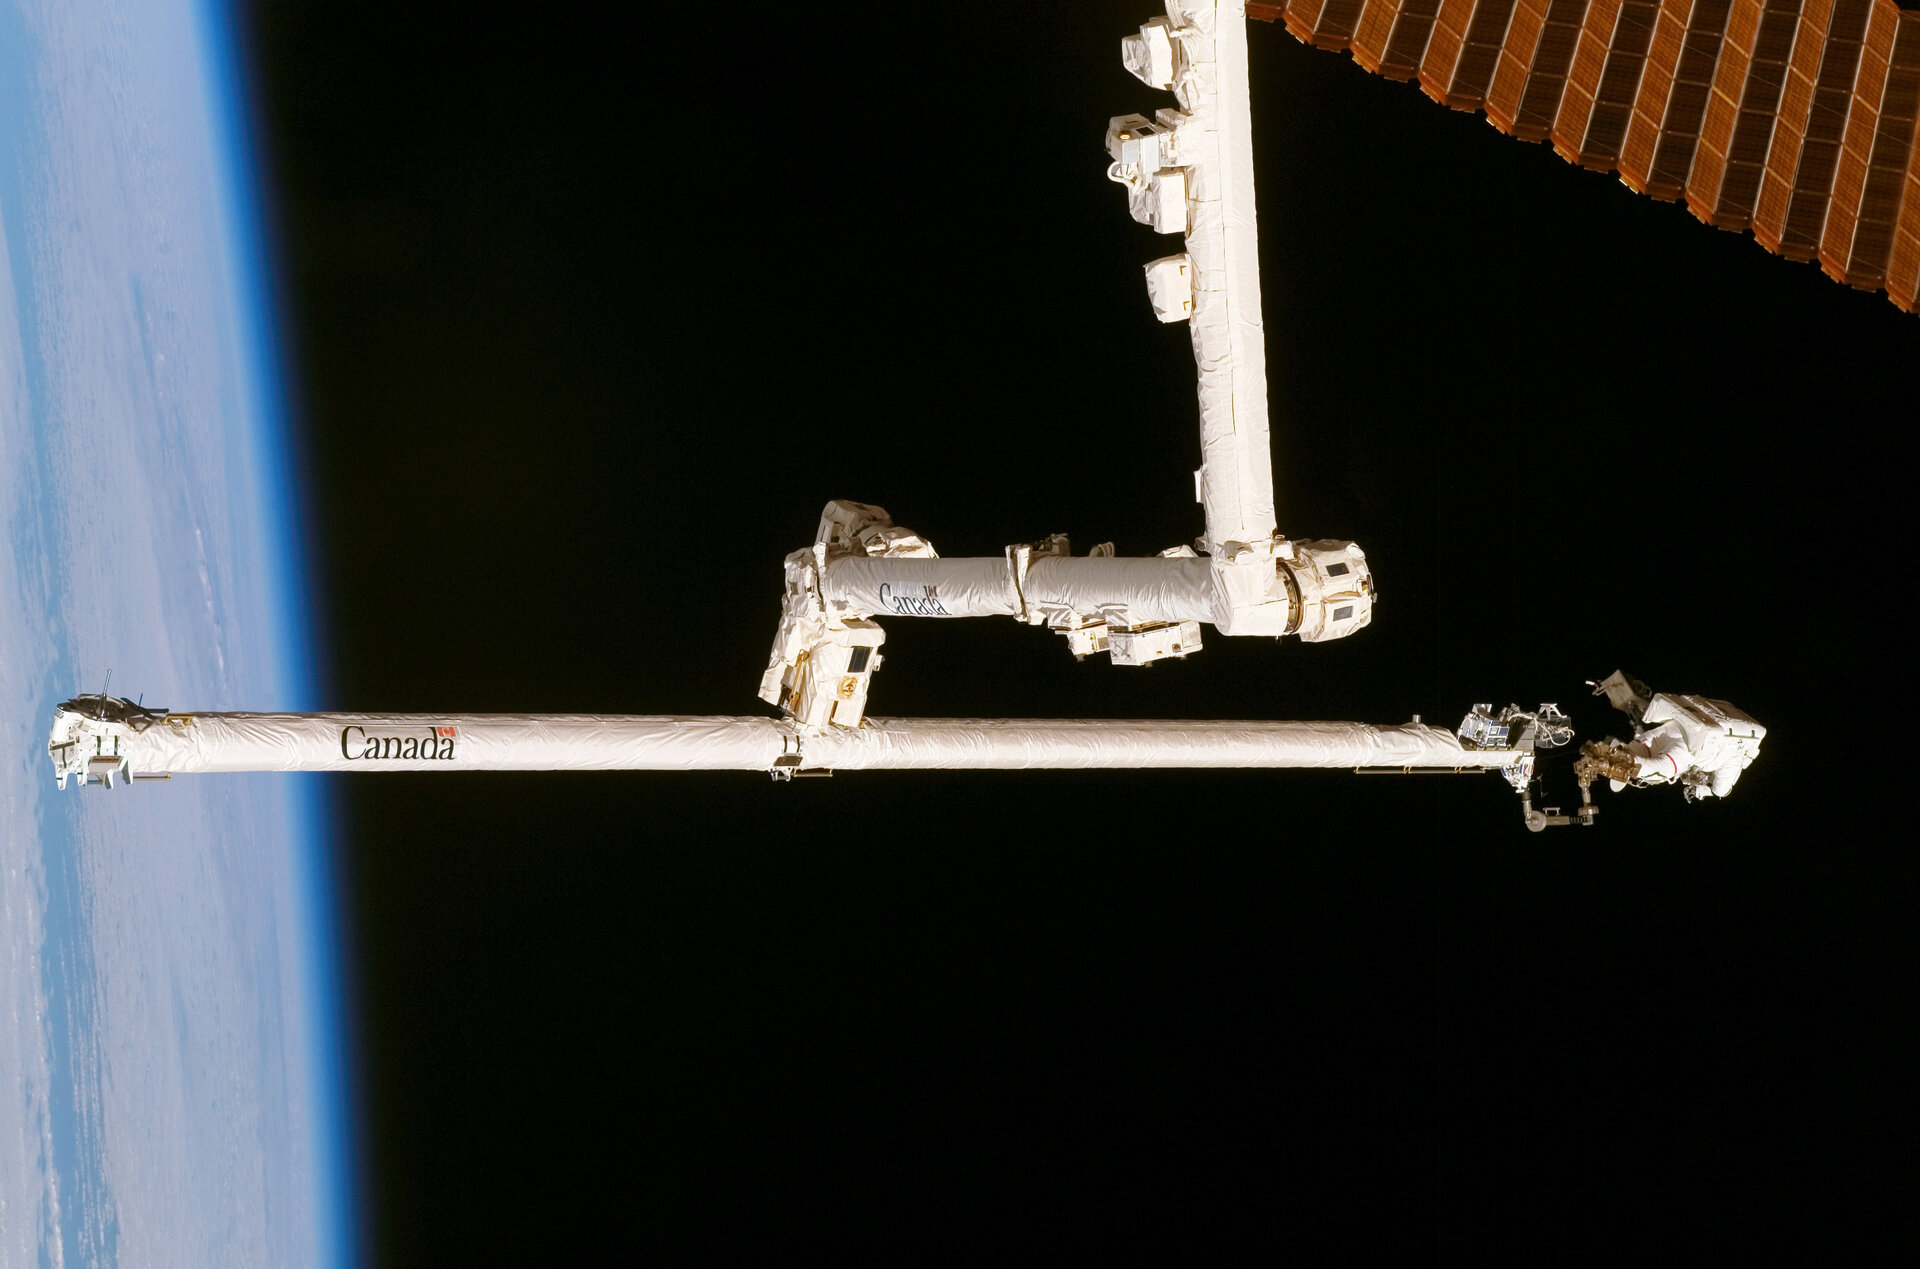 Spacewalk to repair the Station's torn solar array